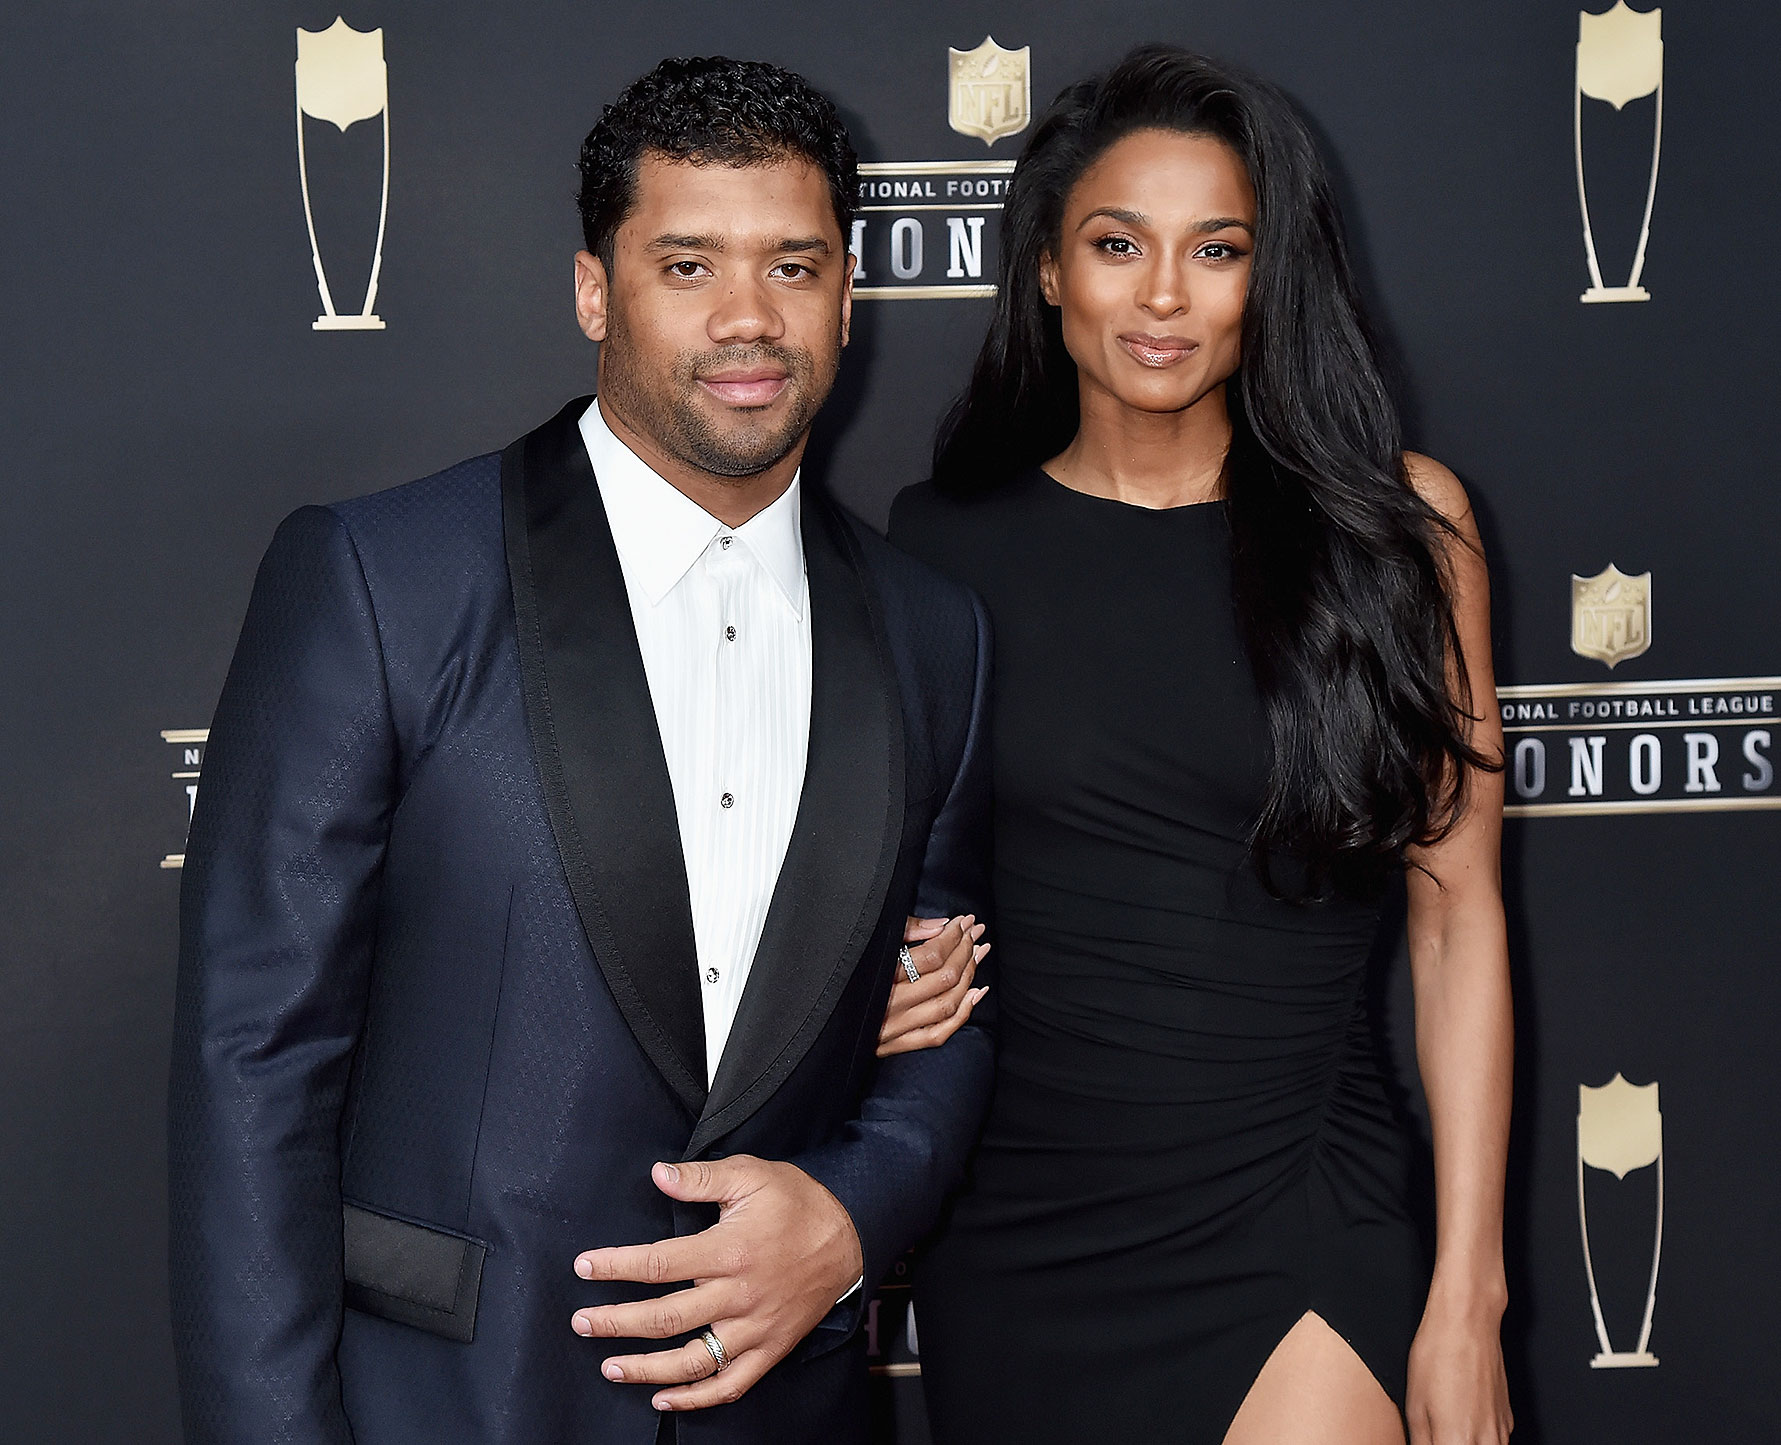 Ciara Russell Wilson February 2, 2019 - Russell Wilson and Ciara attend the 8th Annual NFL Honors at The Fox Theatre on February 2, 2019 in Atlanta, Georgia.